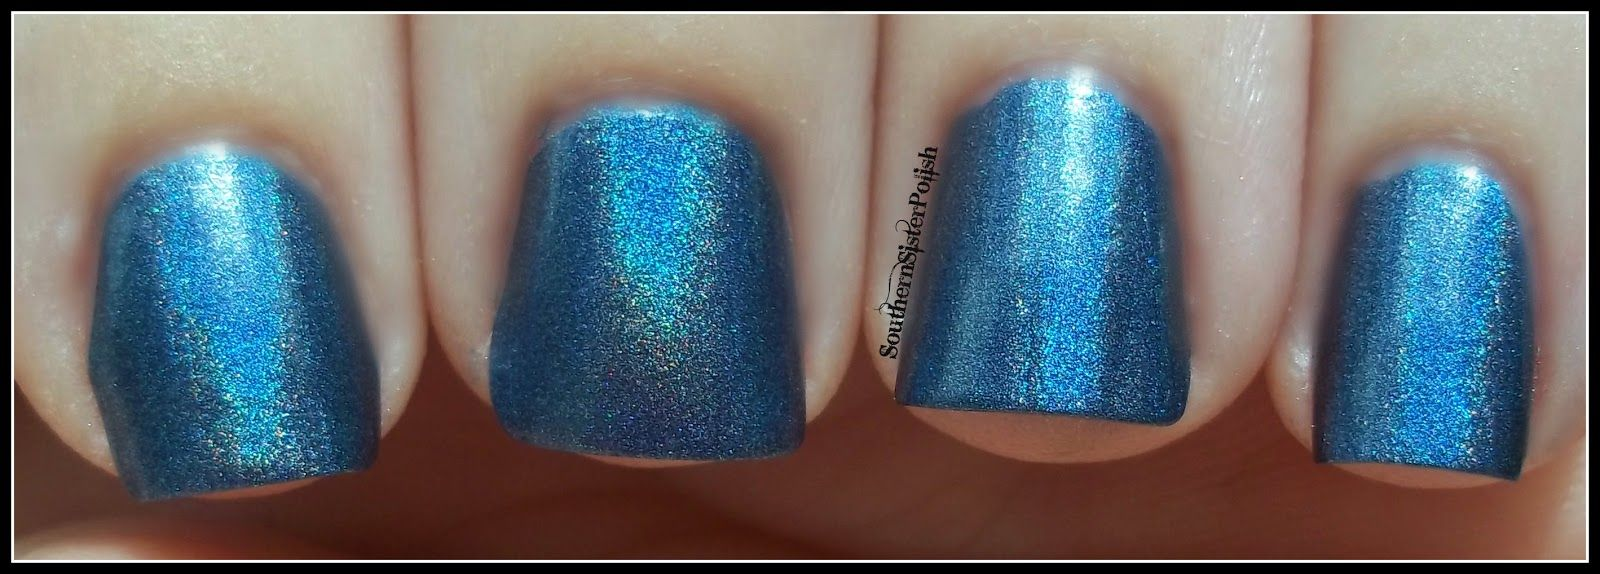 Southern Sister Polish: Holographic Quick Shot...Strap on your Moonboots